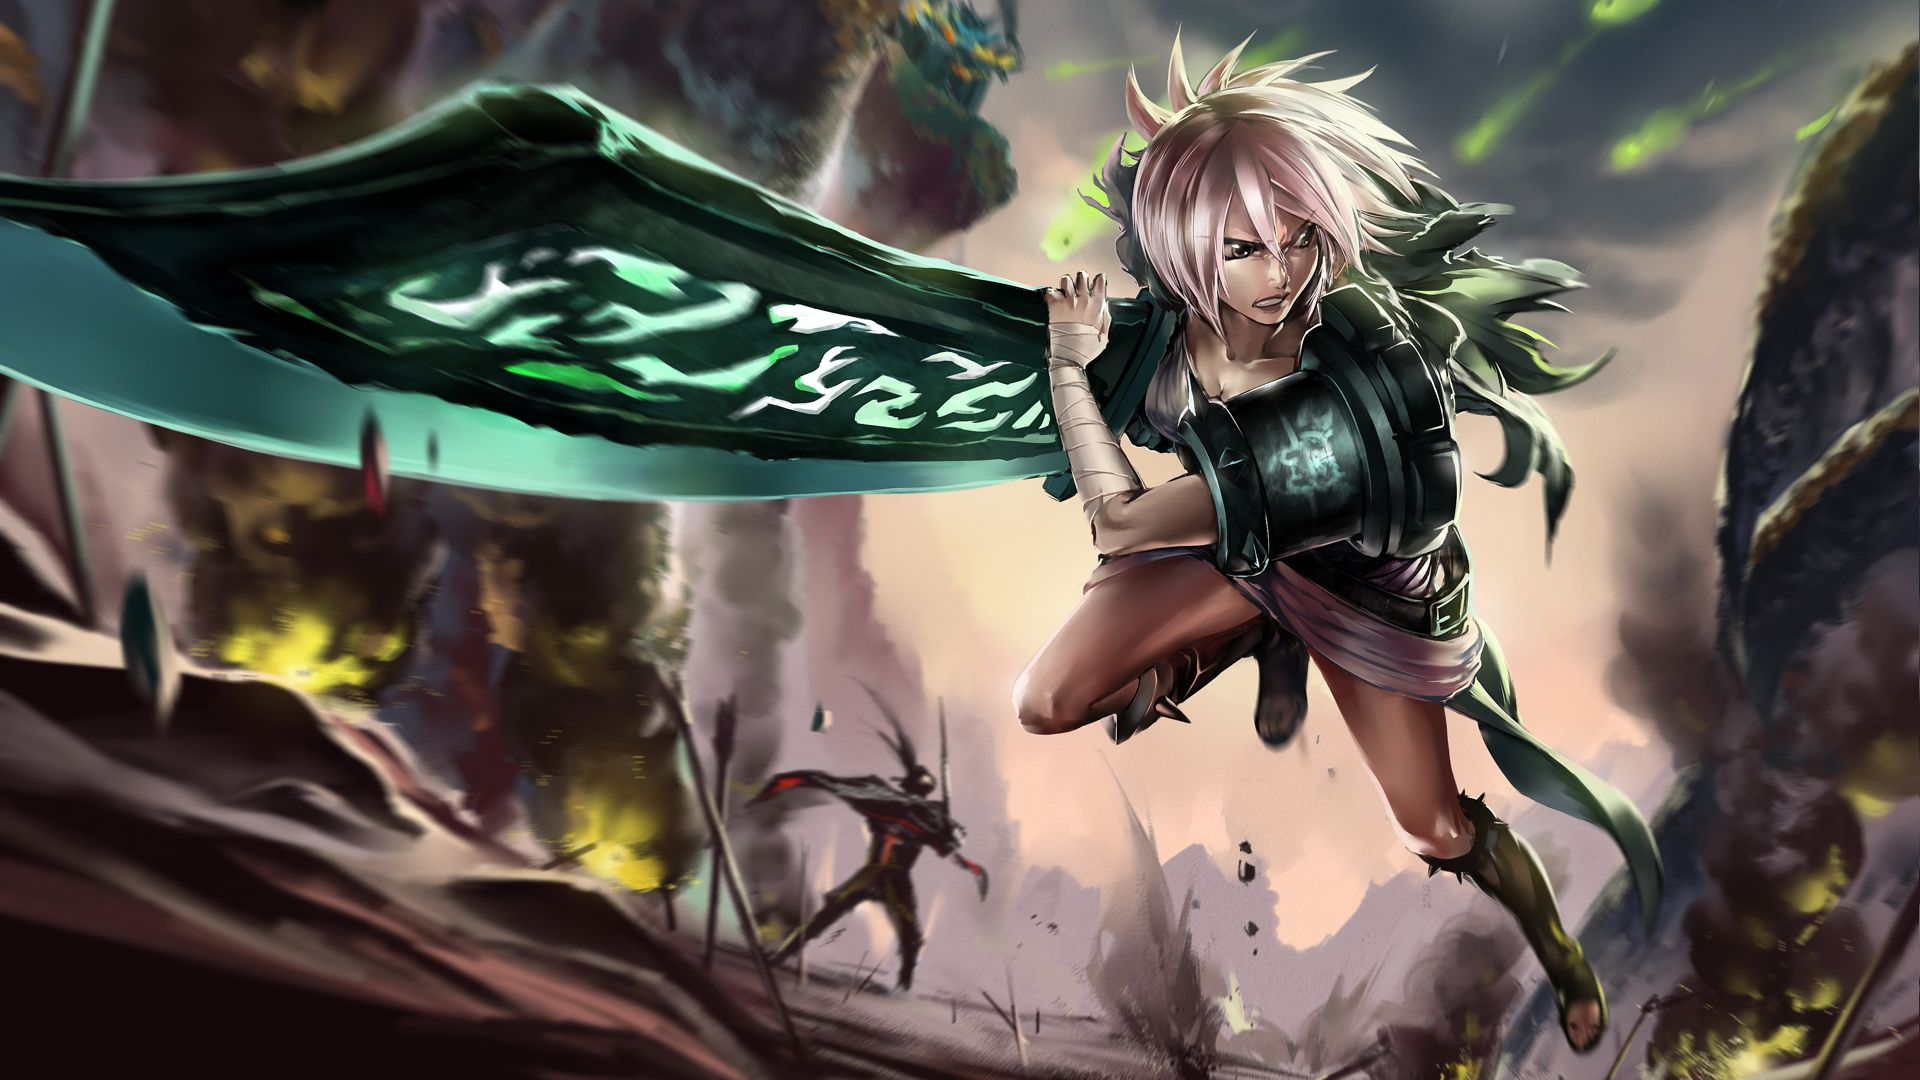 Full Size And Download Wallpapers Hd Downloads League Of Legends Art League Of Legends Video